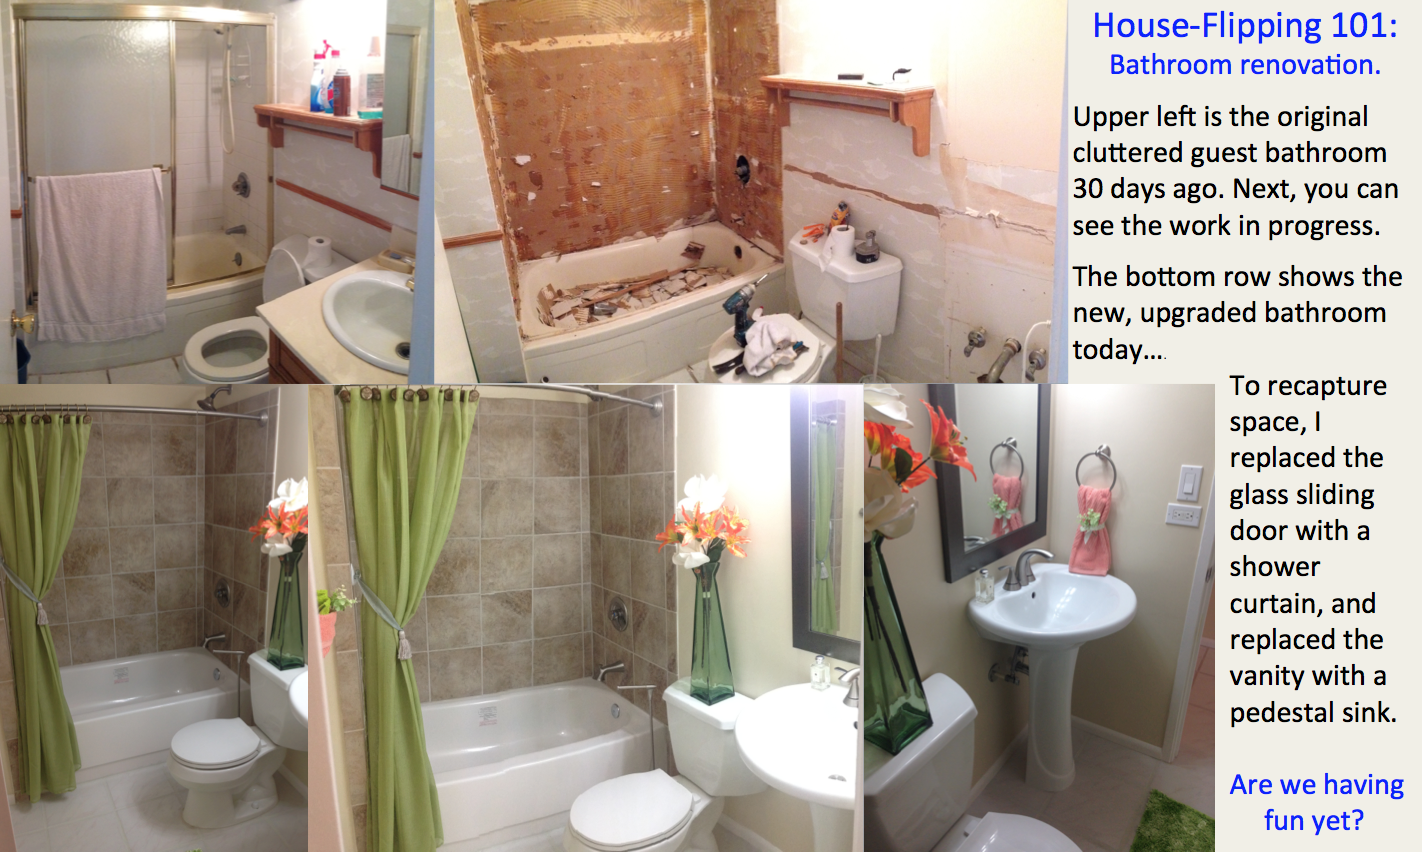 Bathroom Renovation Shows house flipping in hawaii - bathroom renovation. before & after